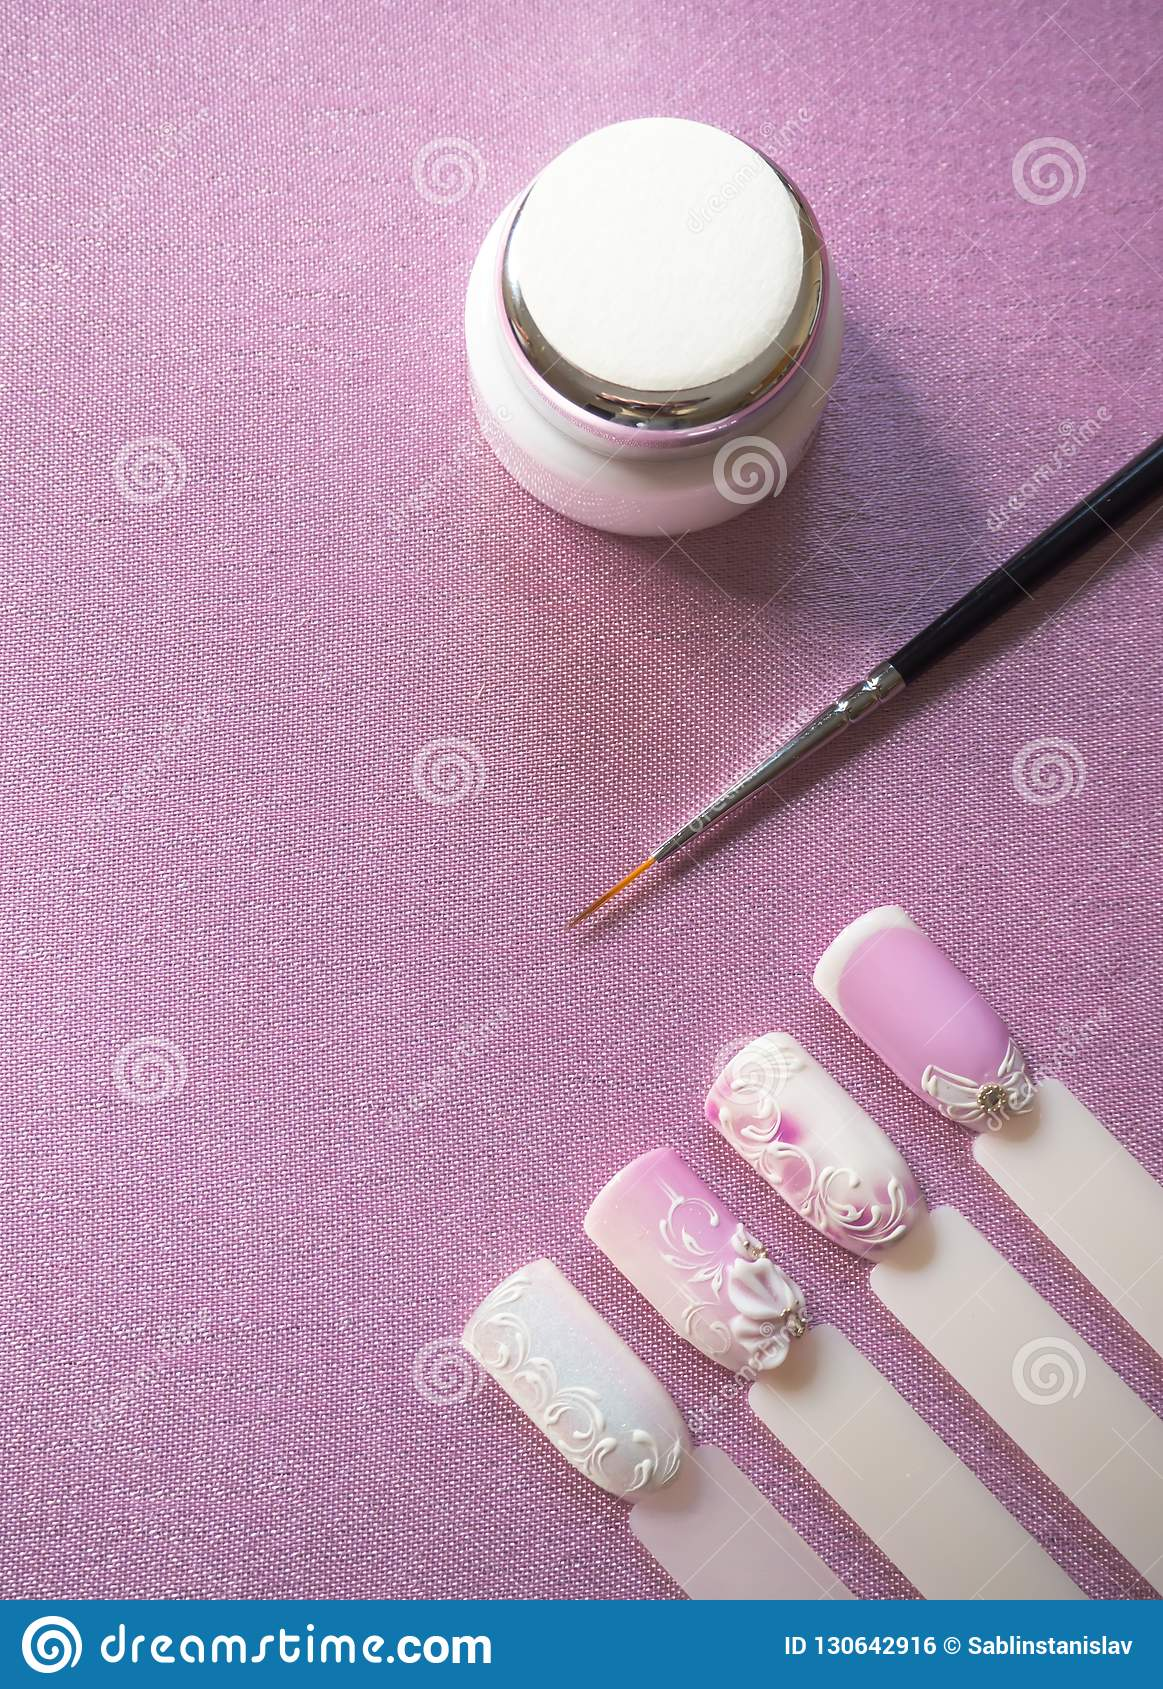 Nail Design Paint Brushes And Types On Pink Background Stock